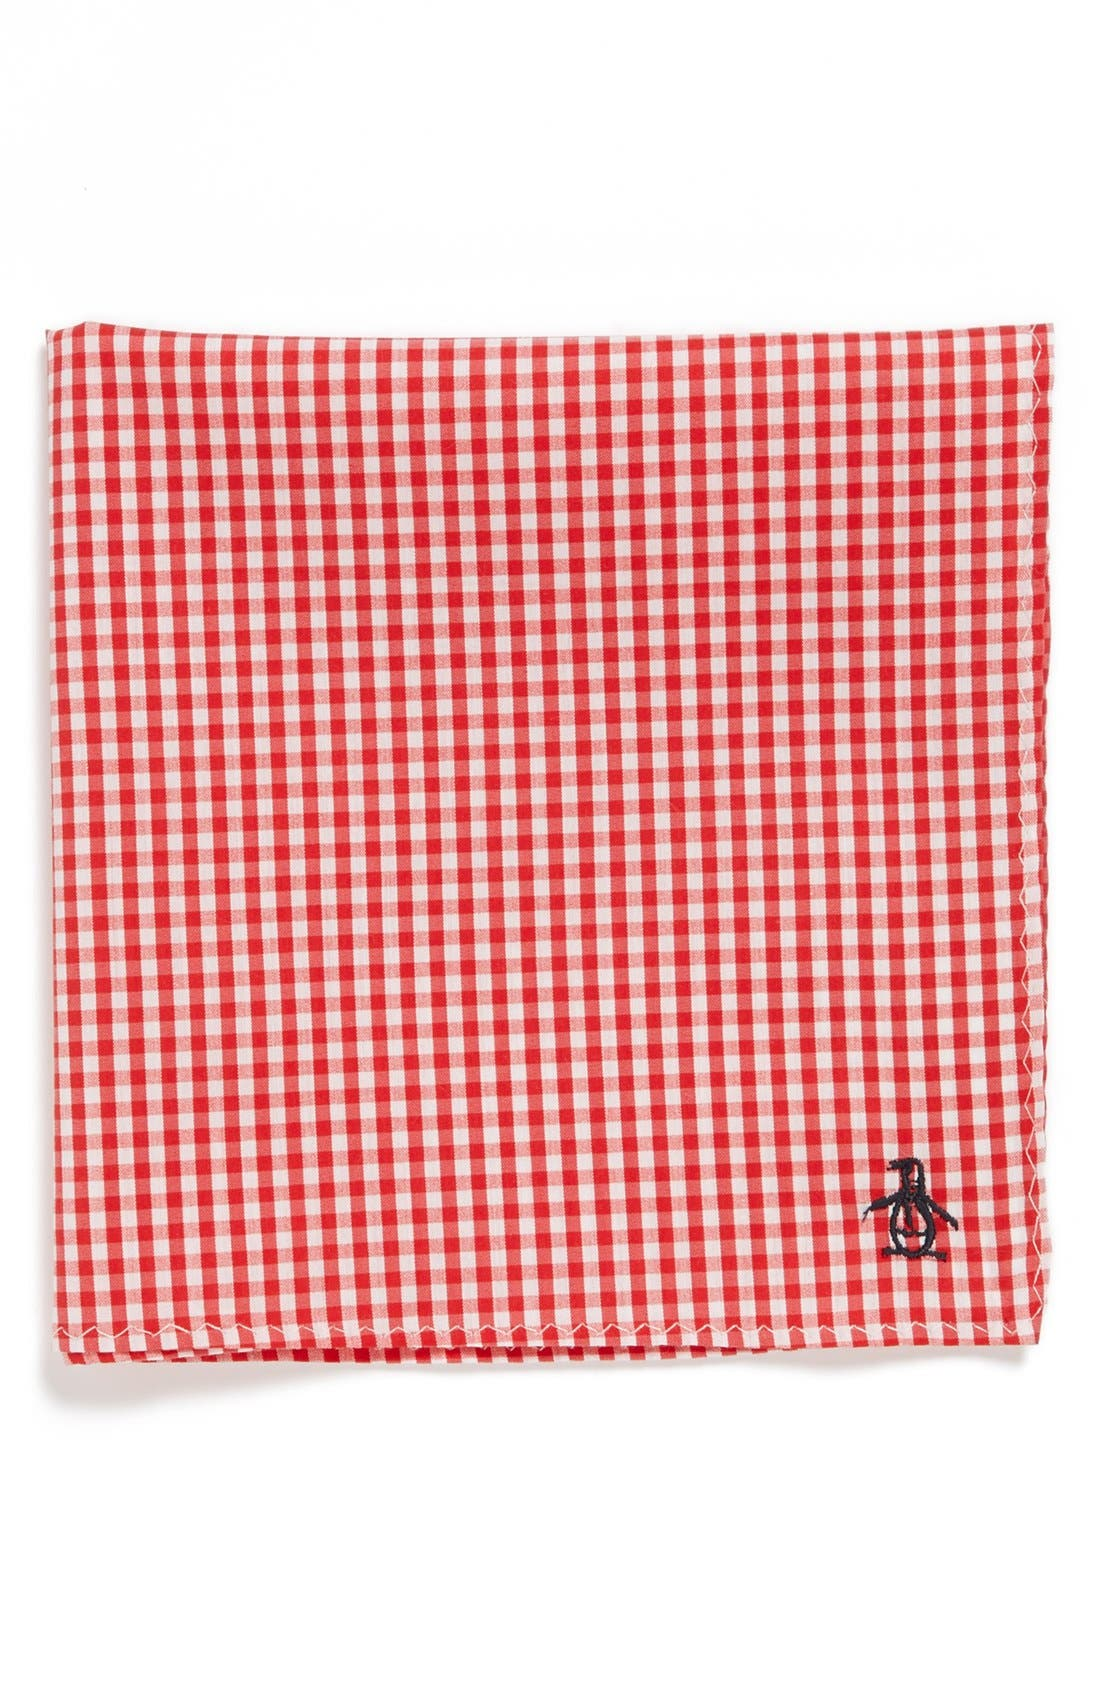 Alternate Image 1 Selected - Original Penguin 'Pace Mini Check' Cotton Pocket Square